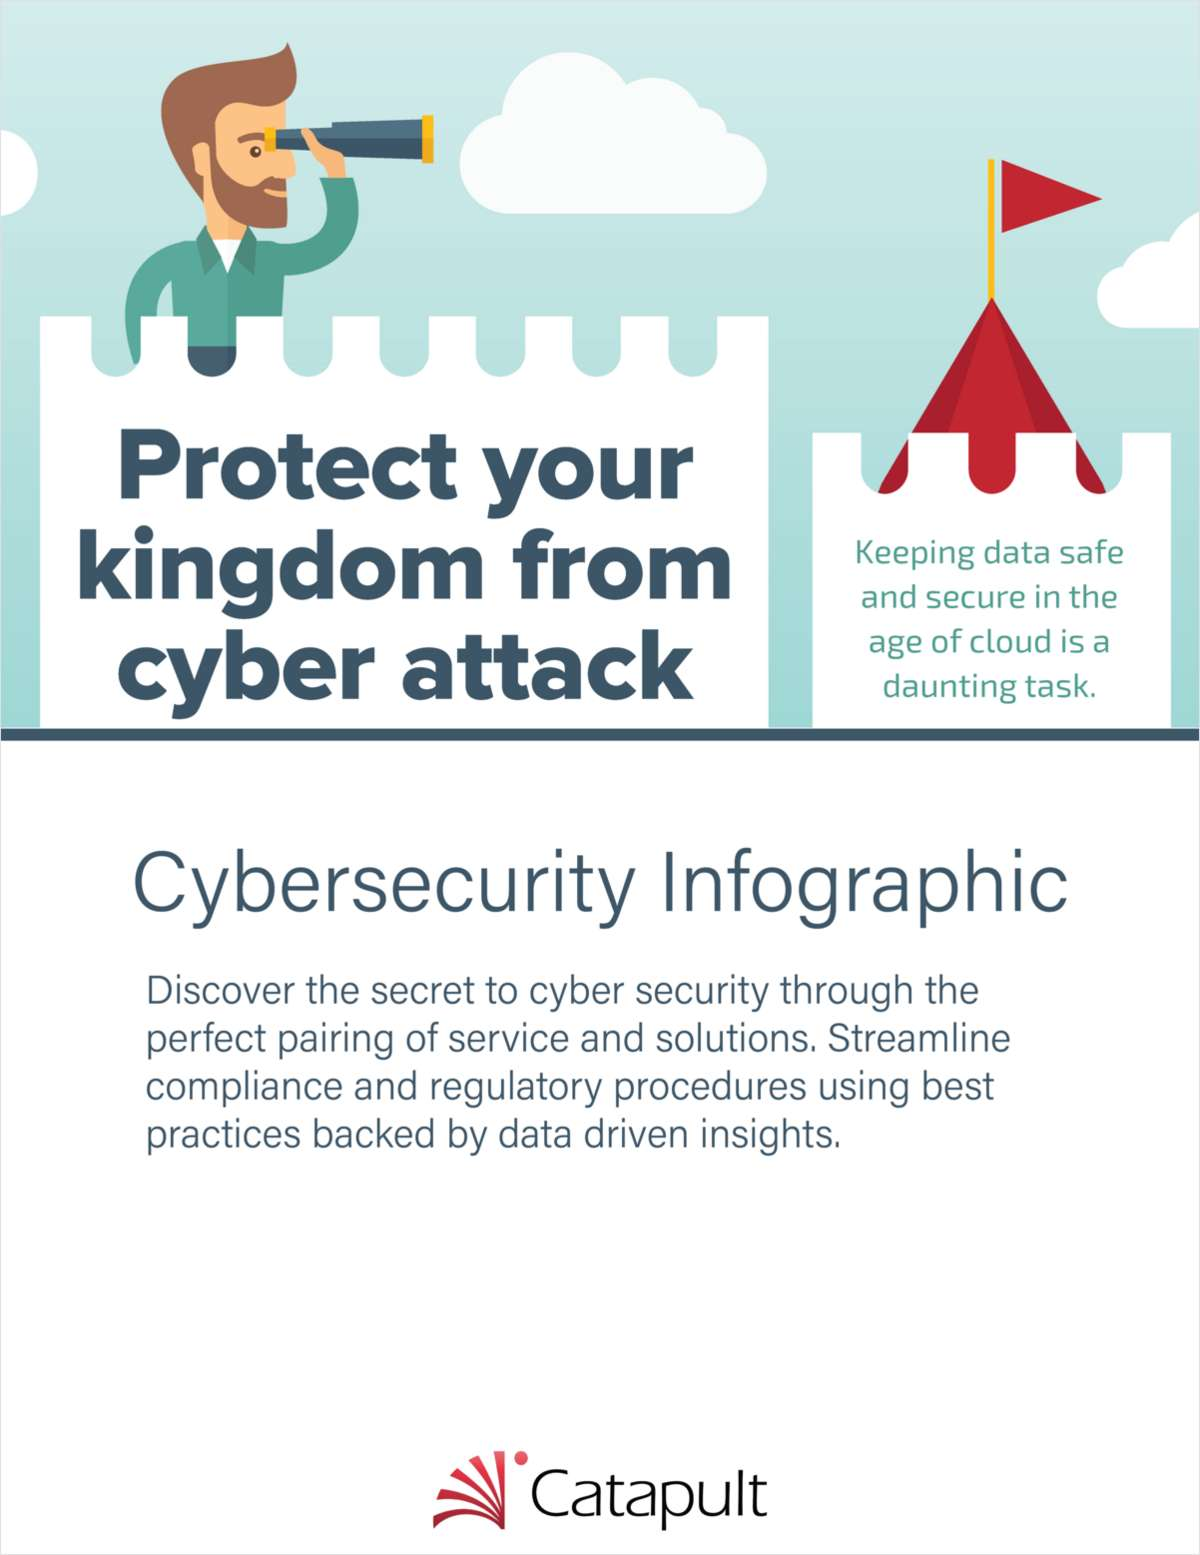 Protect Your Kingdom from Cyber Attack